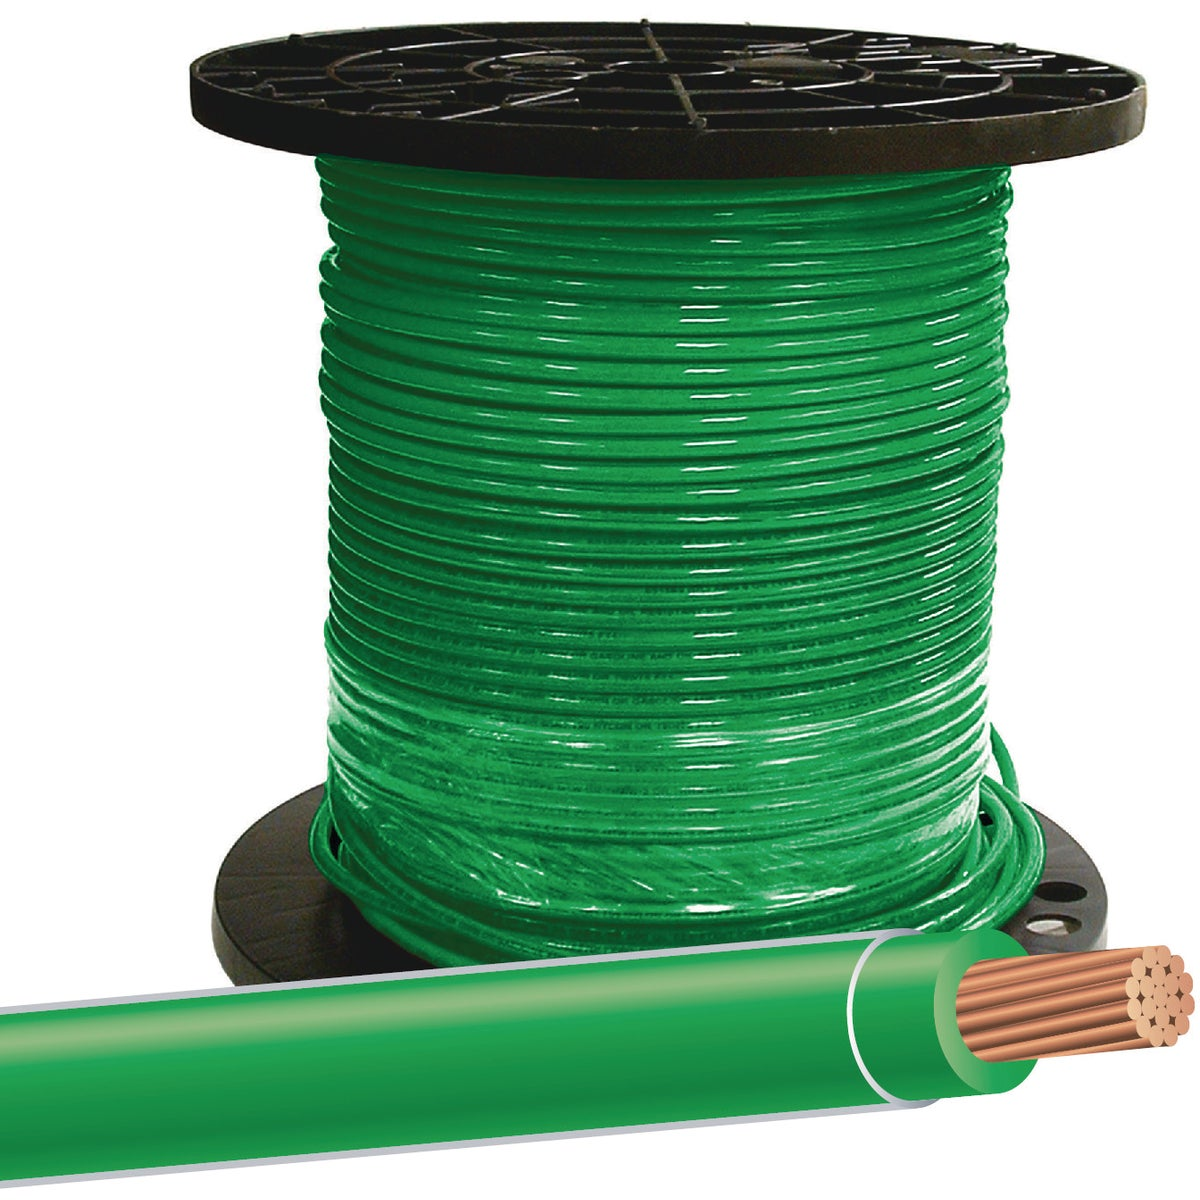 500' 8STR GRN THHN WIRE - 20492512 by Southwire Company